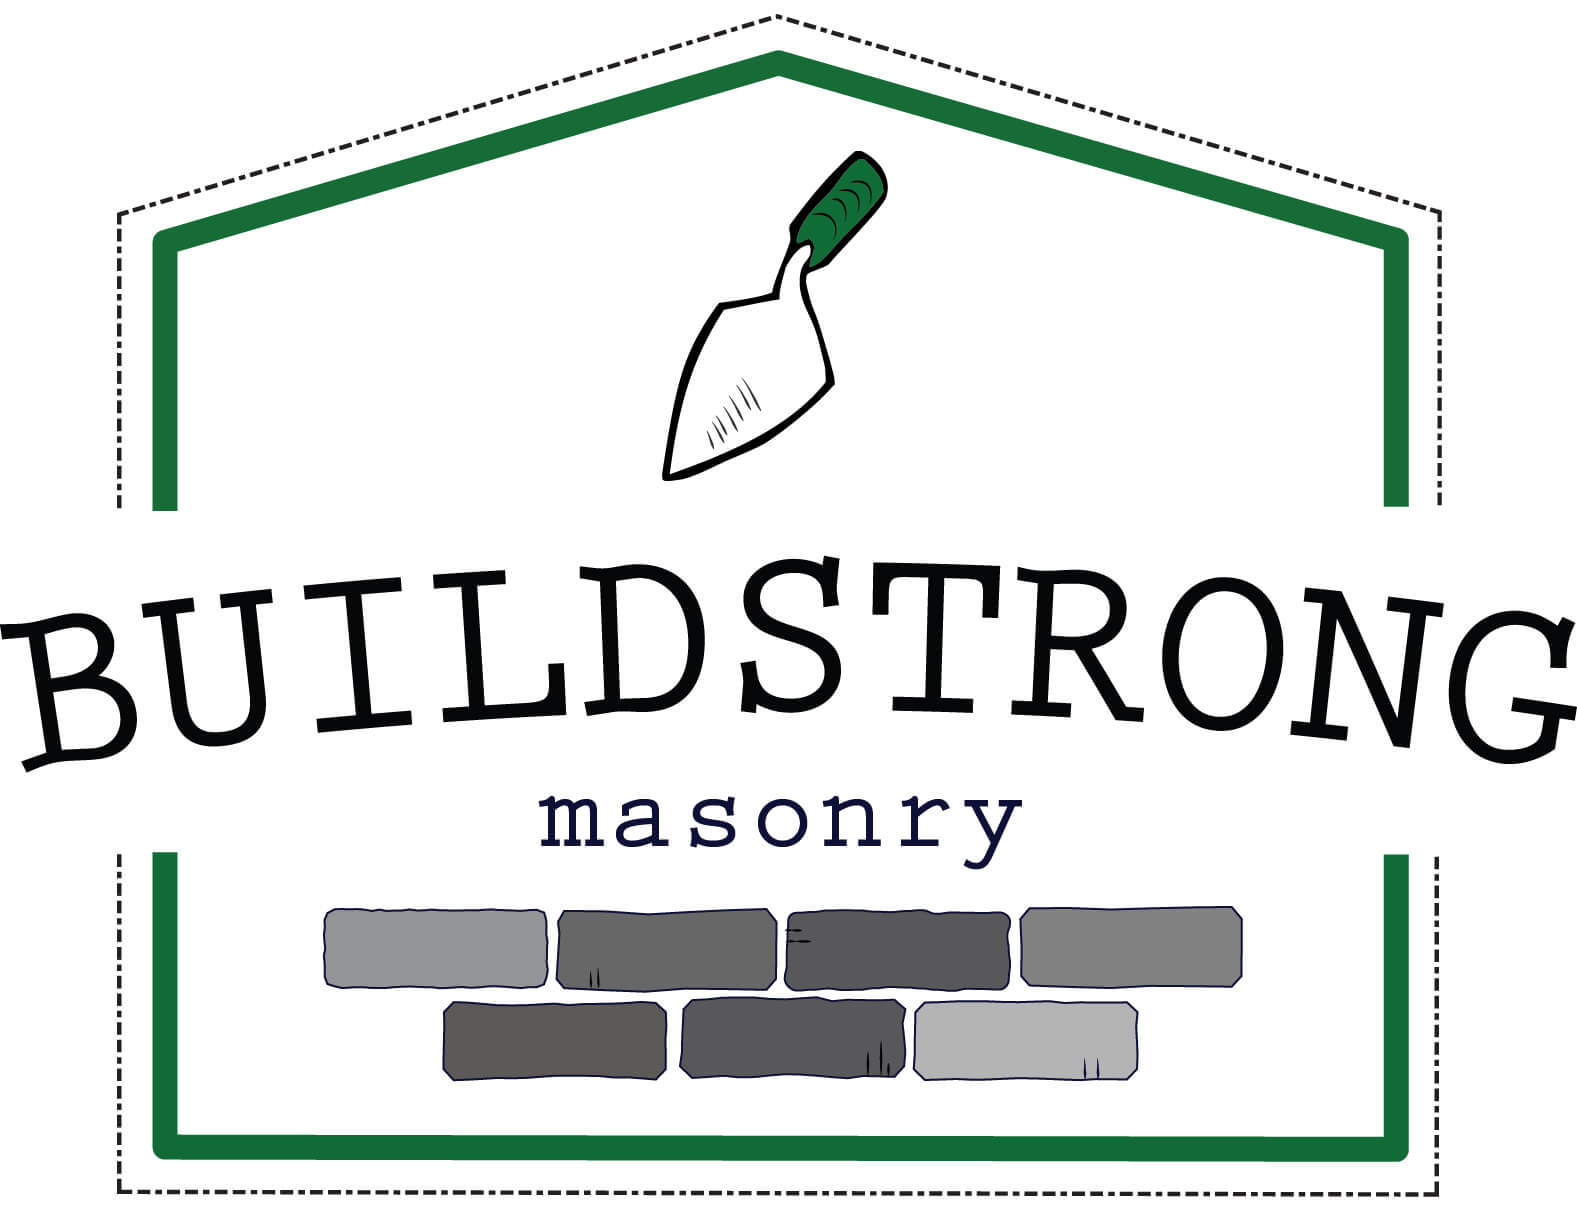 BuildstrongSimple